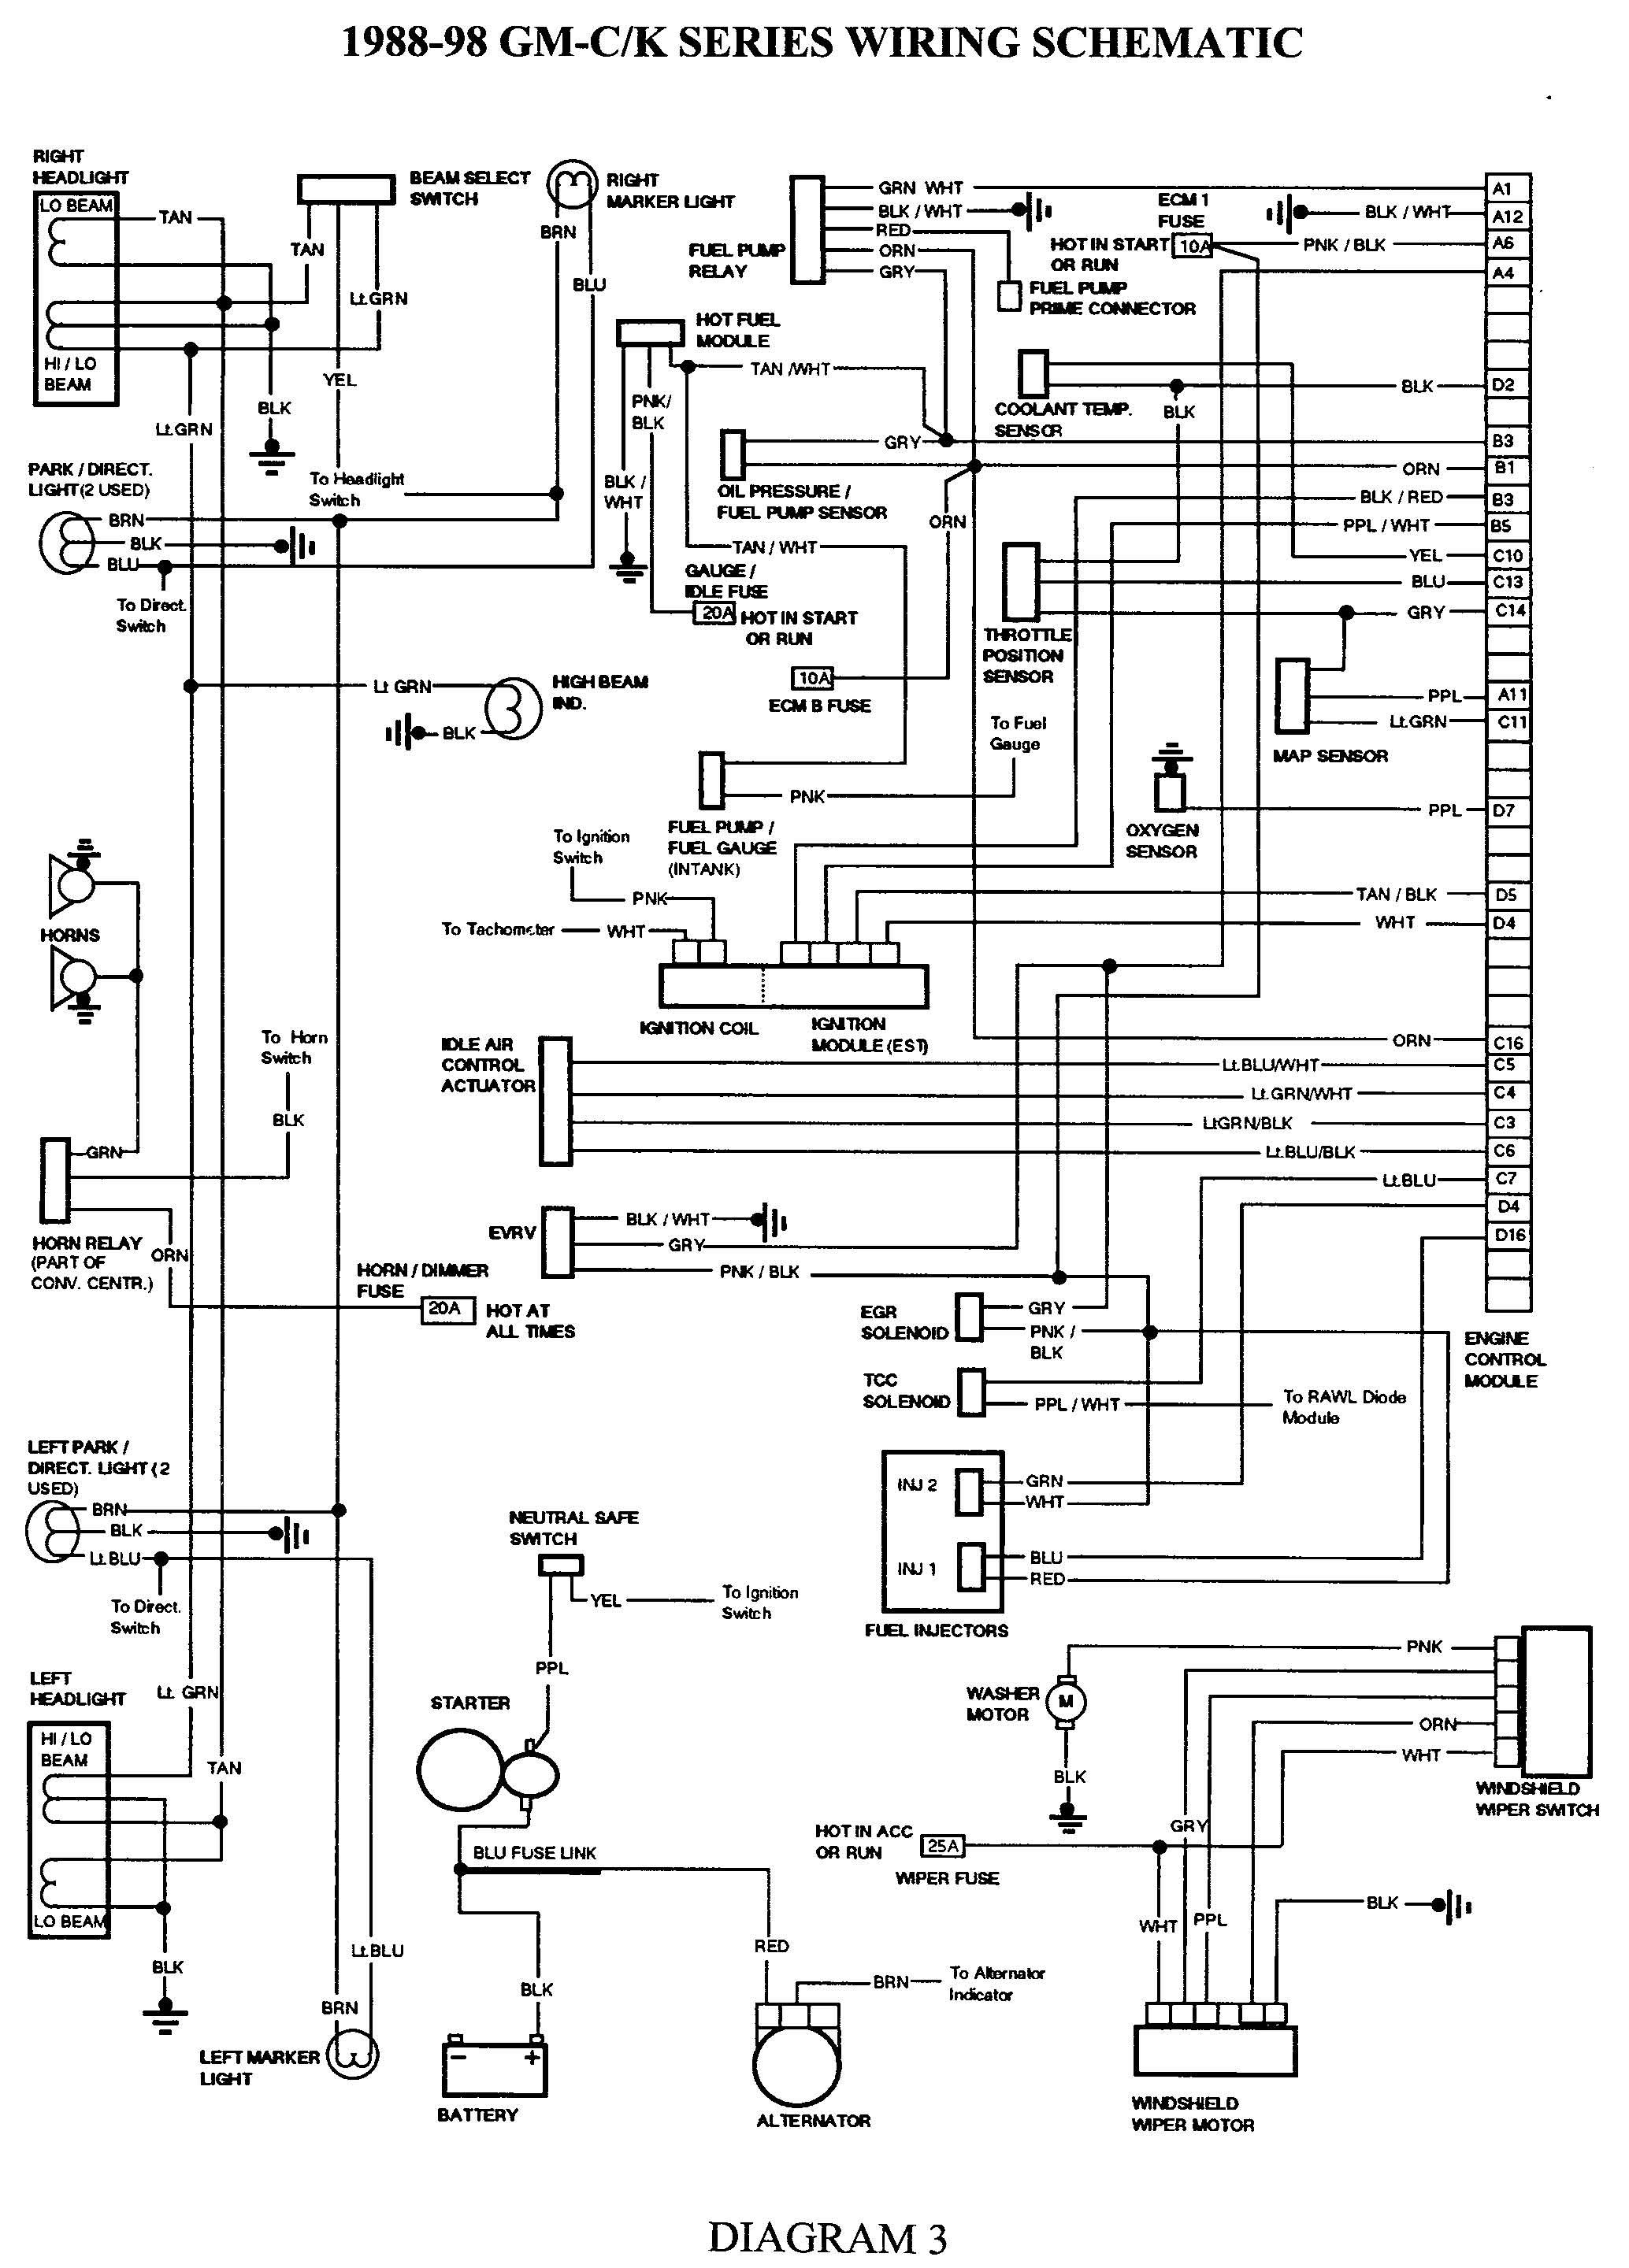 [WLLP_2054]   Pin on kc | 97 Tahoe Wiring Schematic |  | Pinterest